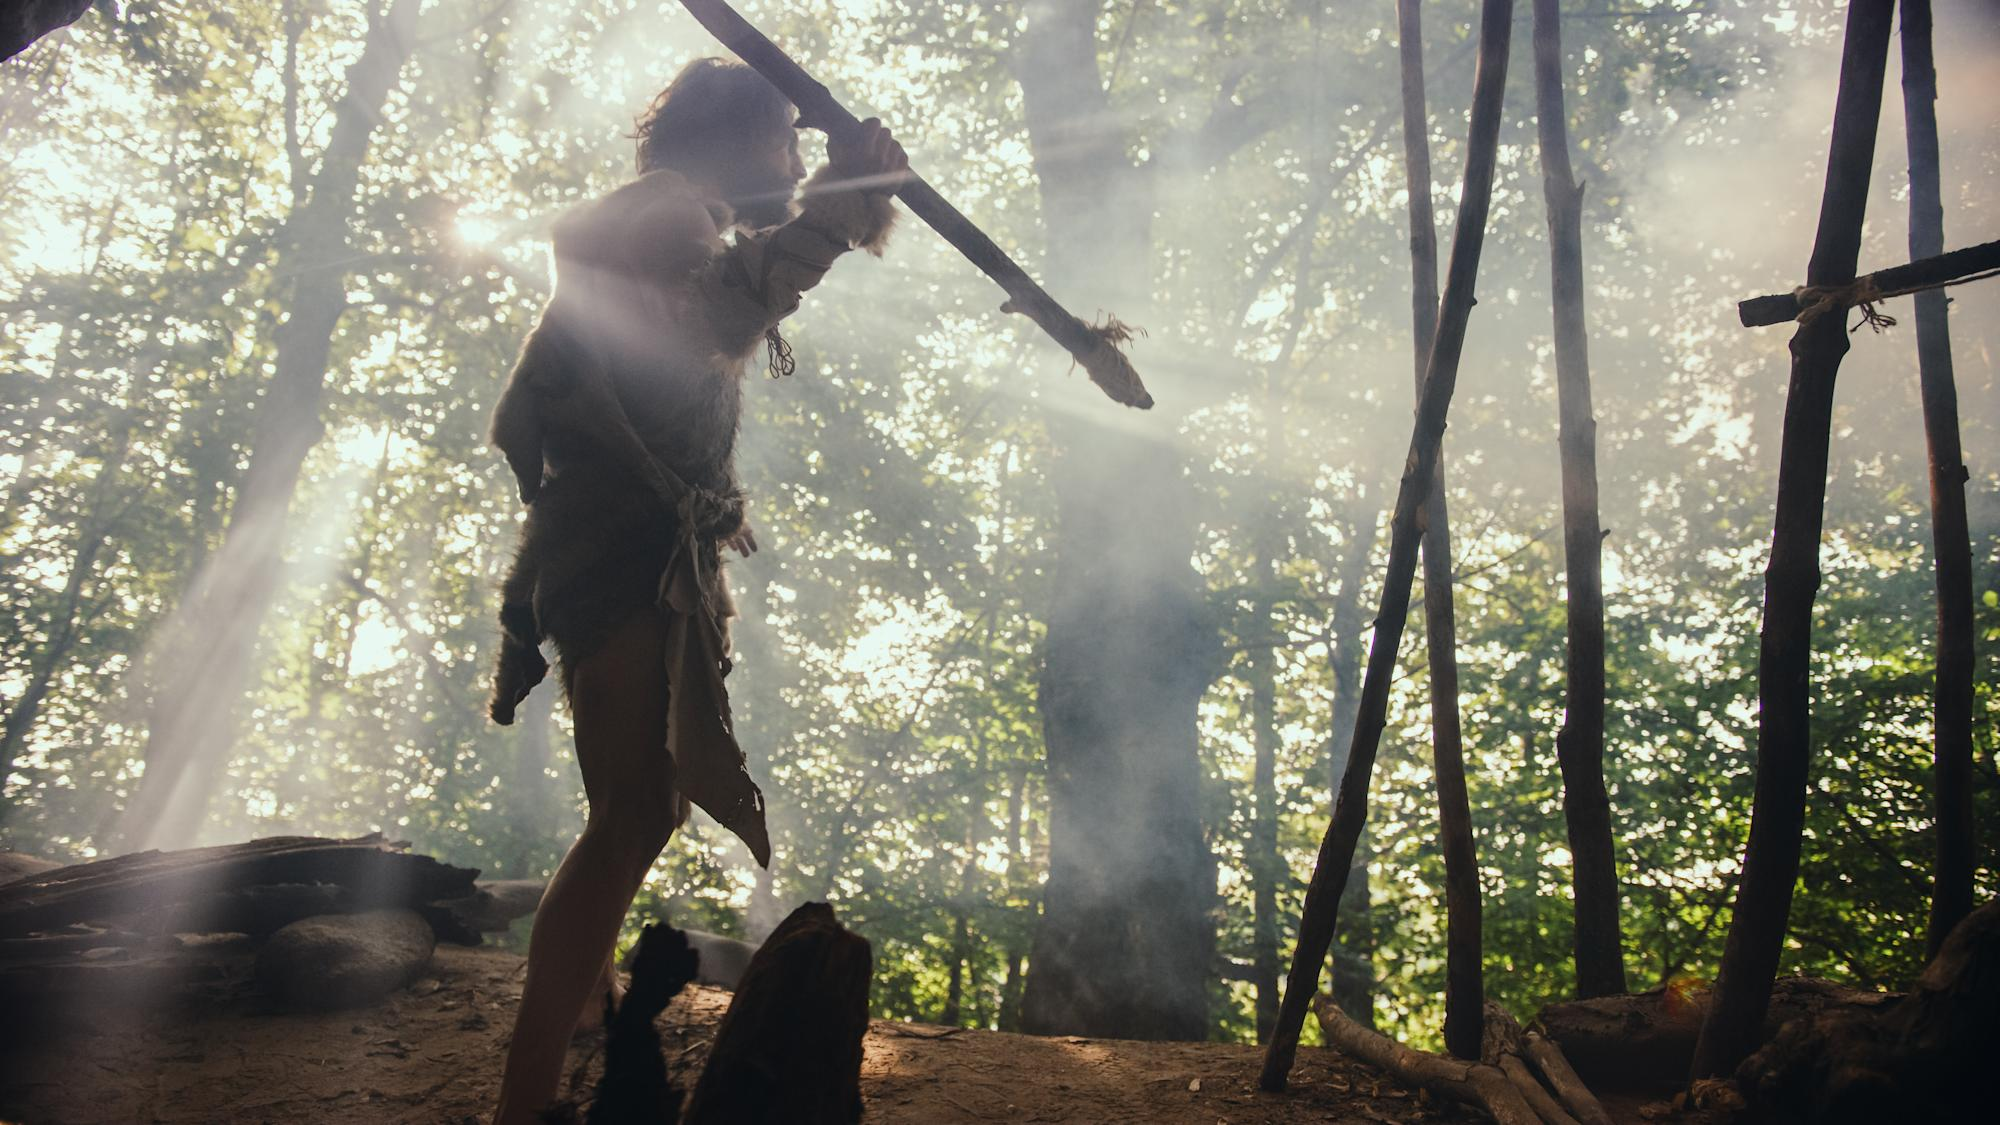 Neanderthals 'could speak, just like humans', new study finds - Yahoo India News